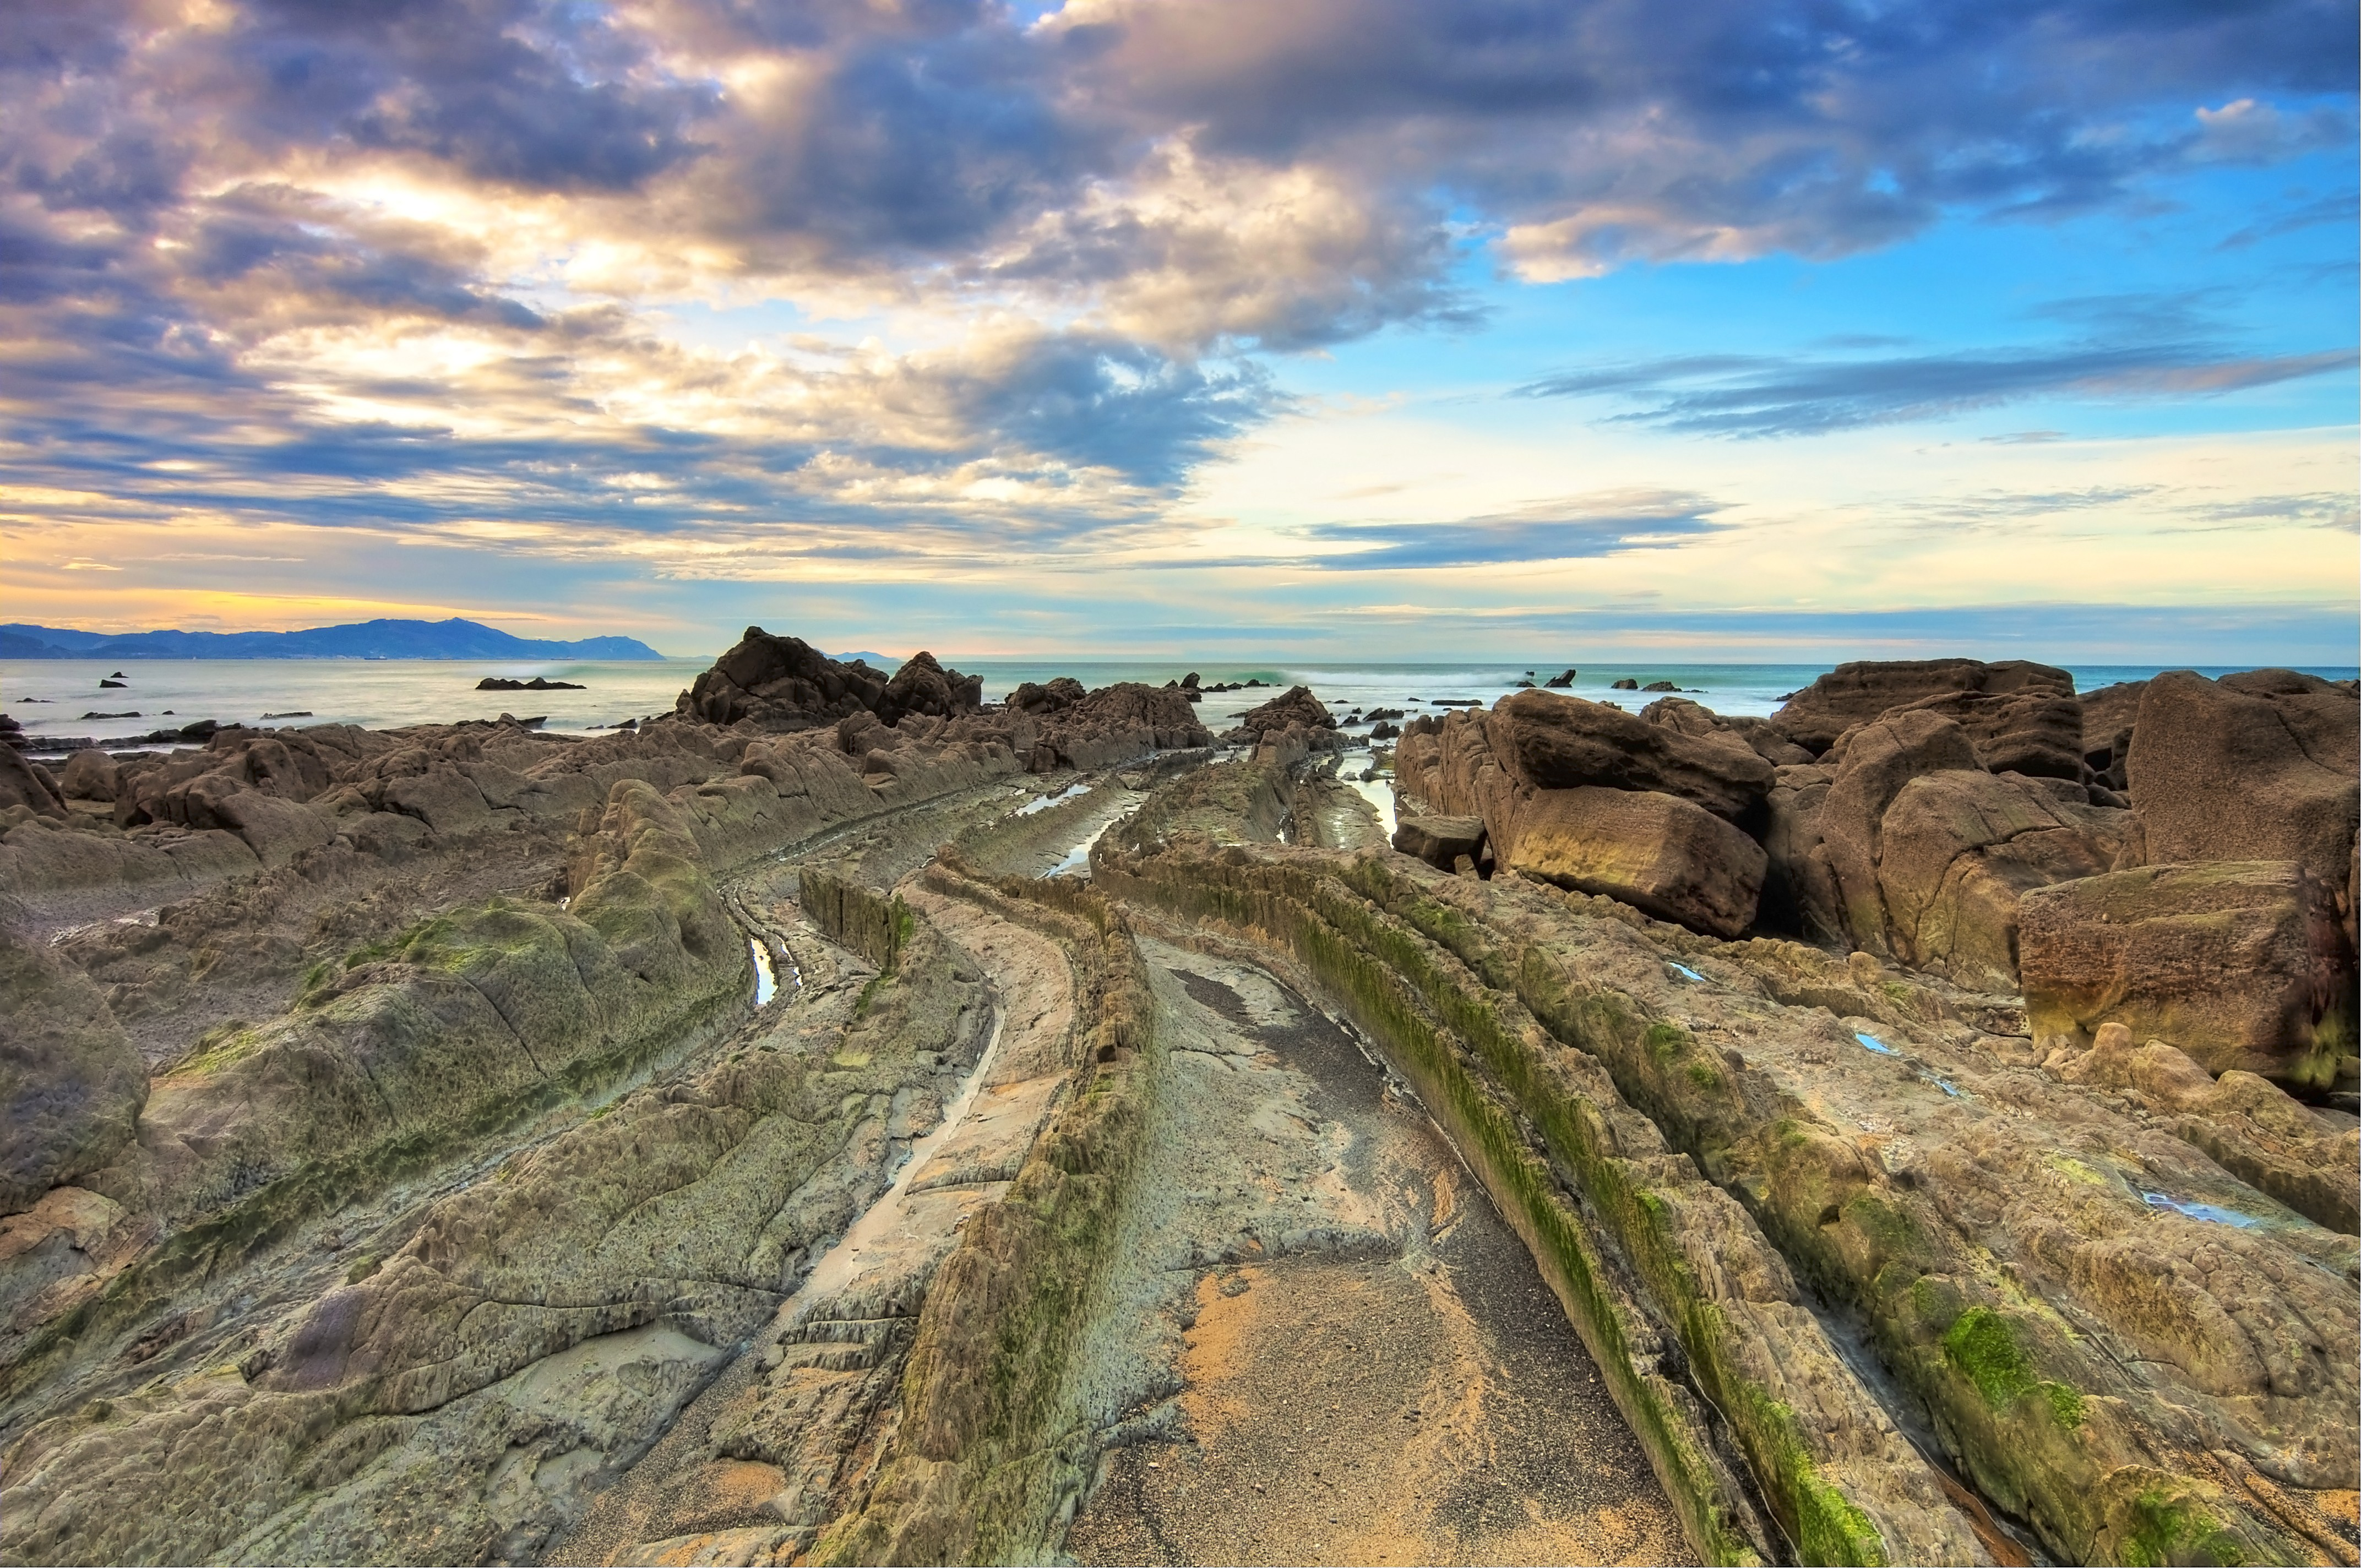 138161 download wallpaper Nature, Water, Stones, Rocks, Spain, Turbidites, Tourbidites screensavers and pictures for free